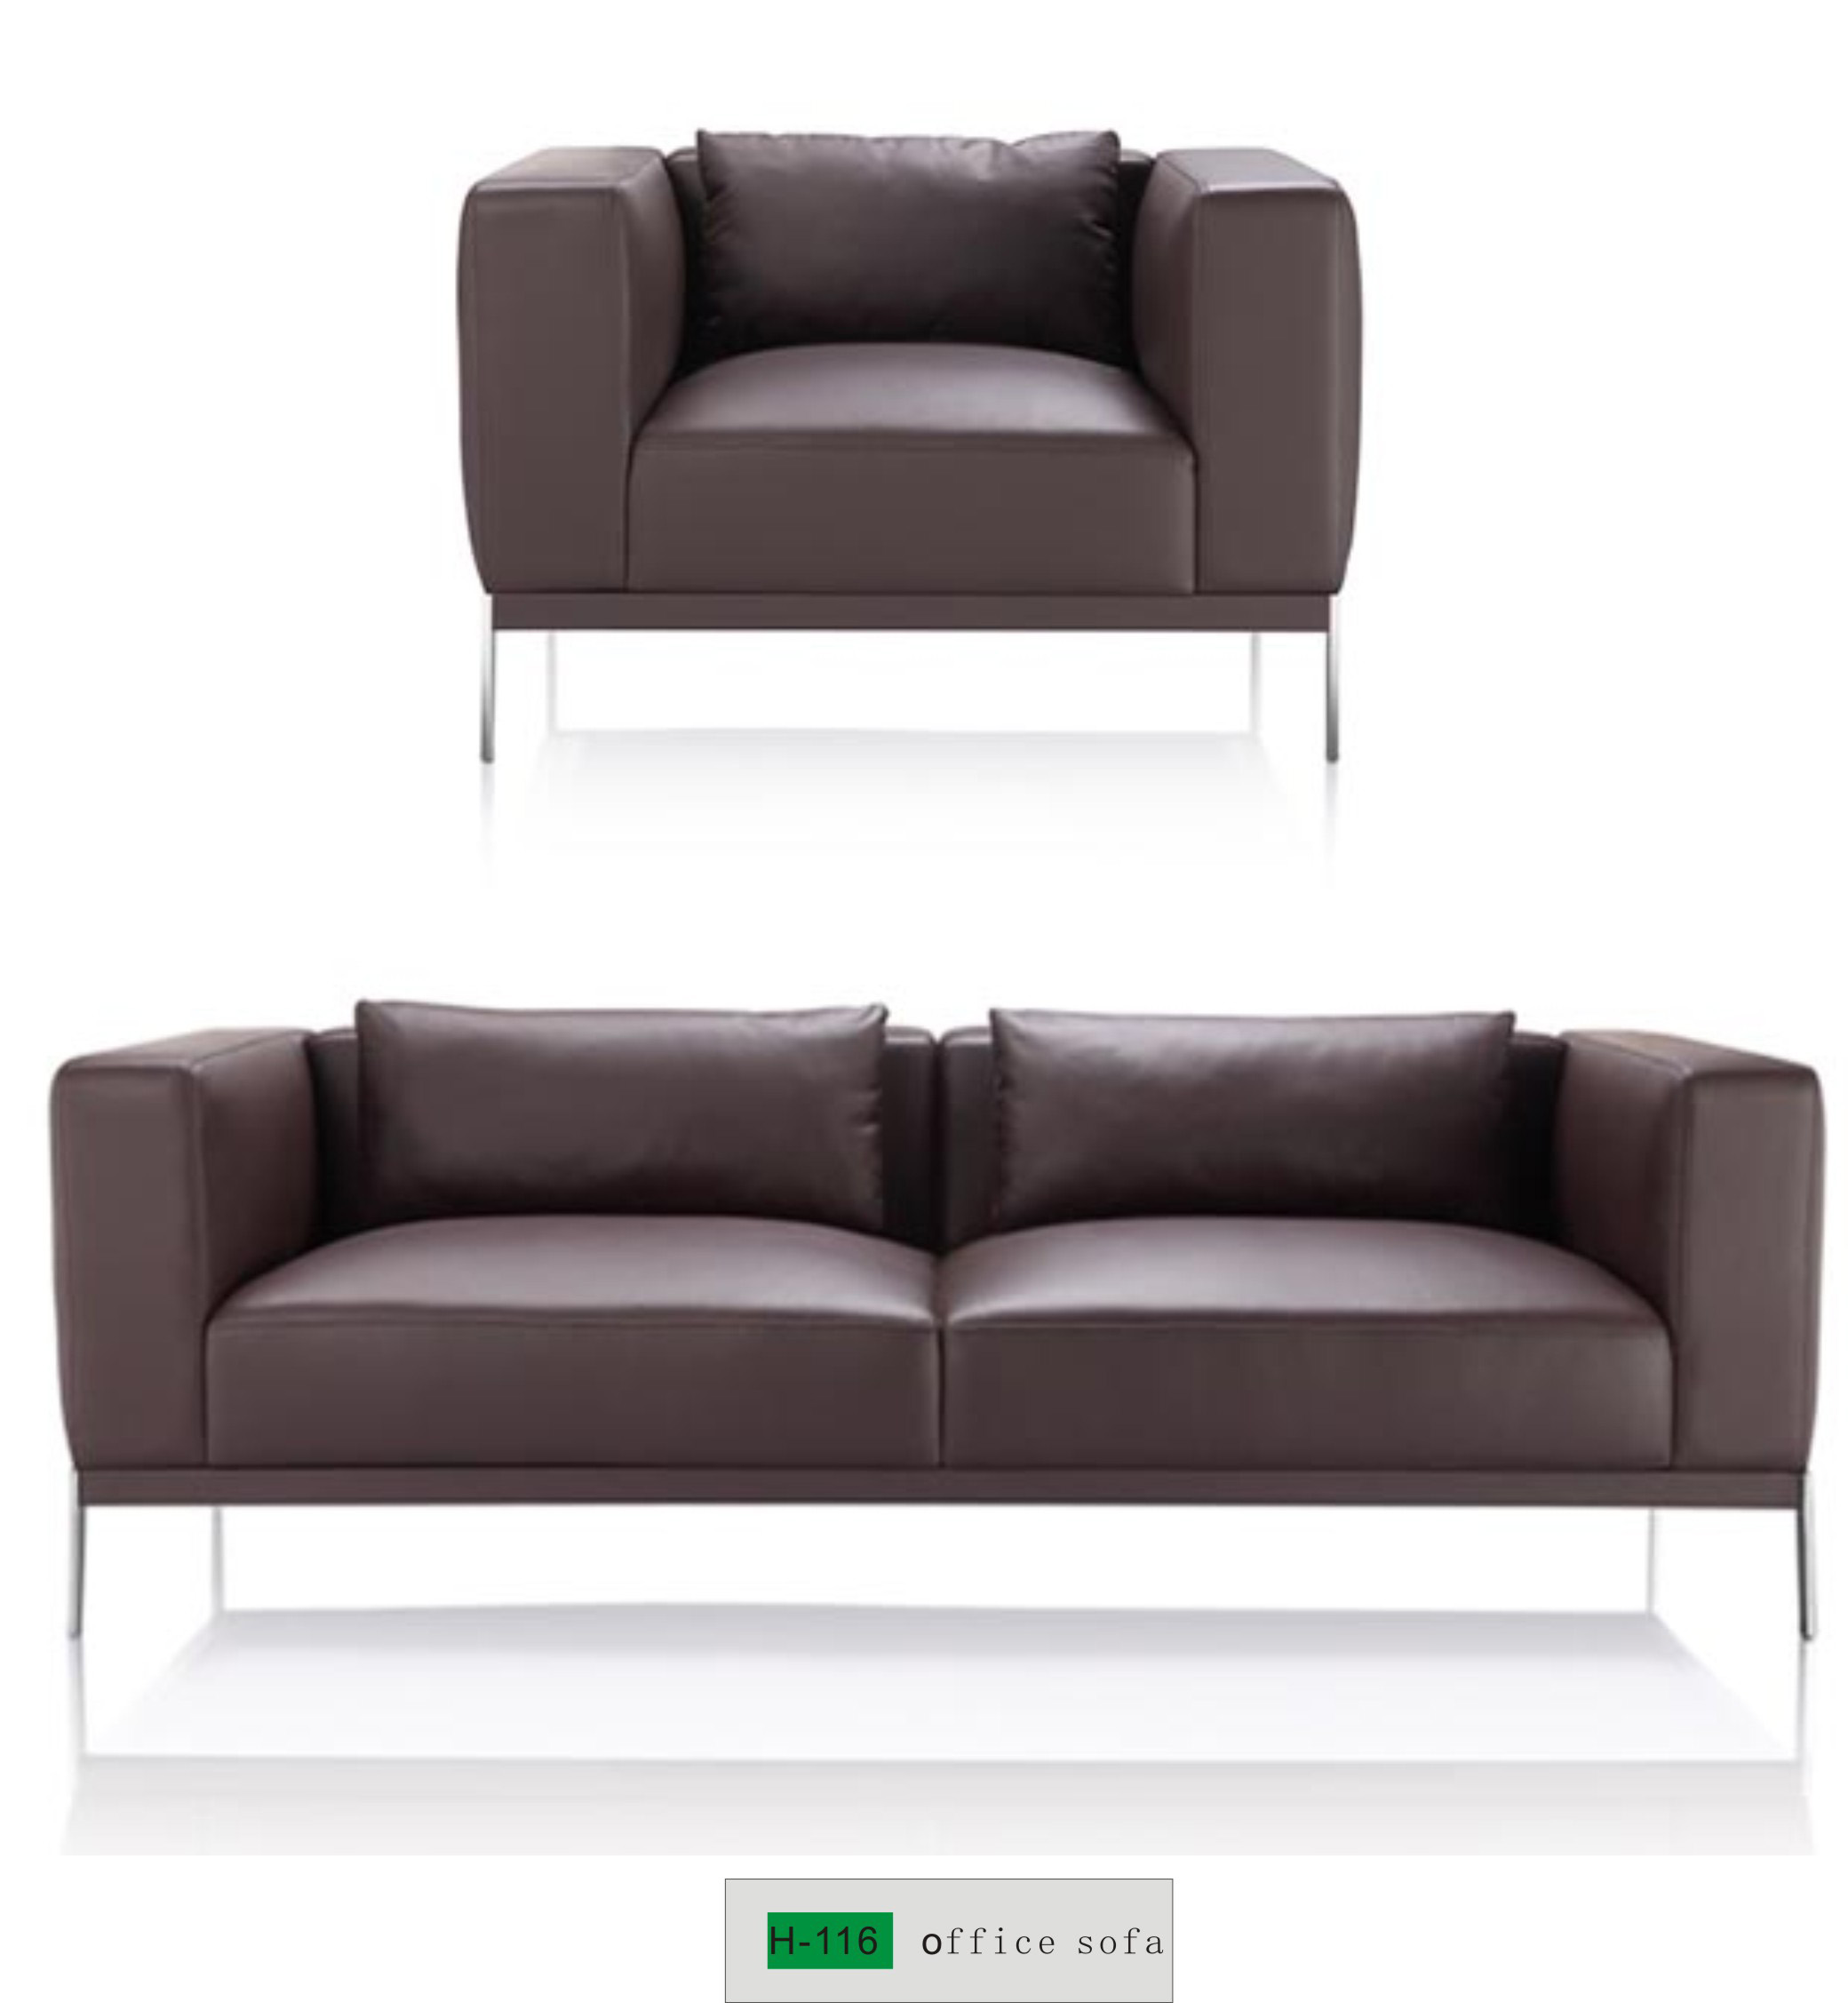 Three Seater Office Sofa H 116 Buy Office Visitor Sofa Office